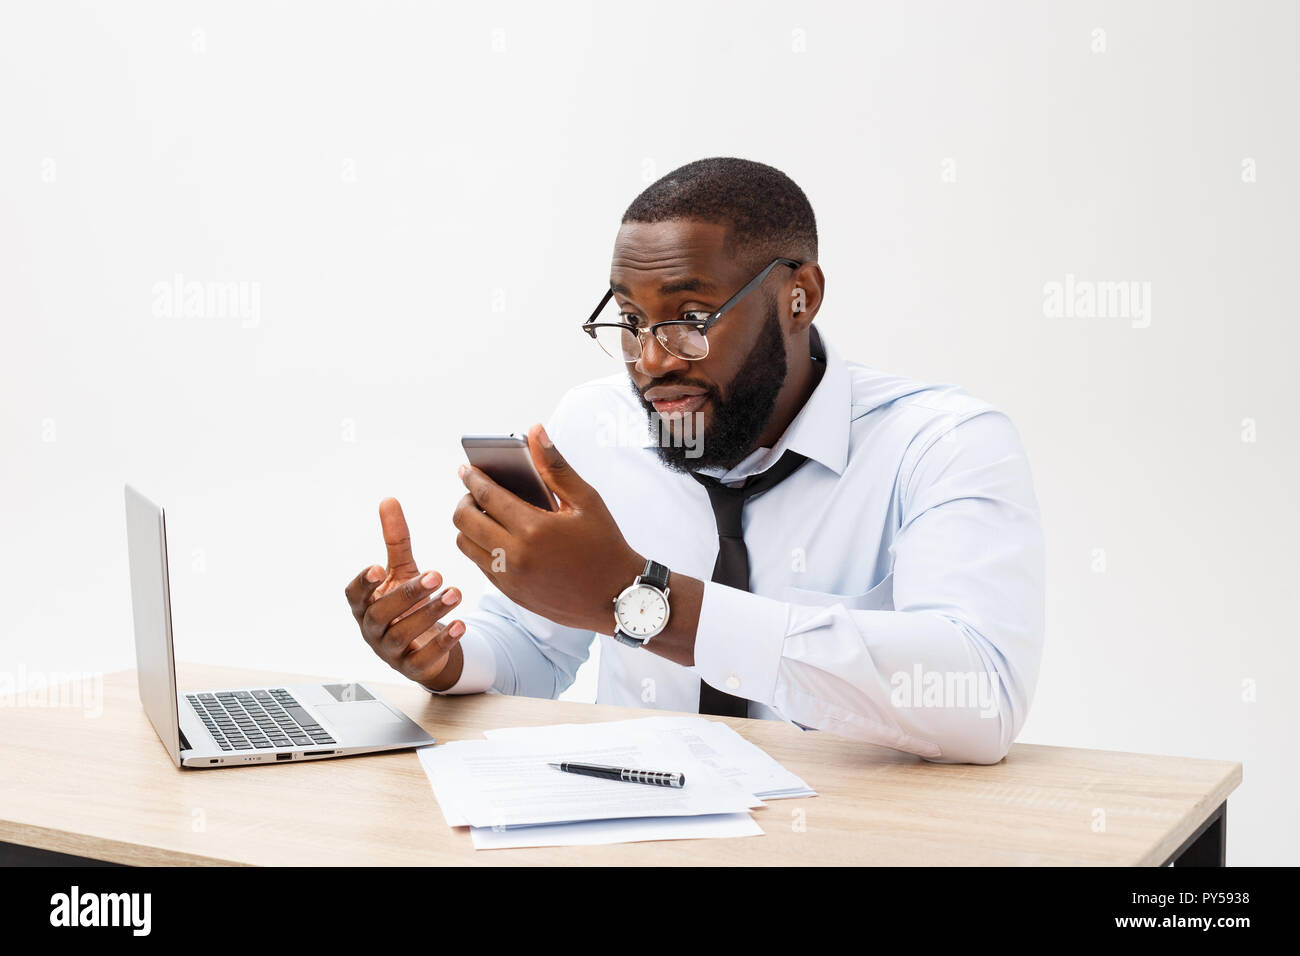 Disappointed African businessman is dazed and confused talking on phone. He feels total disagreement about the deal. - Stock Image